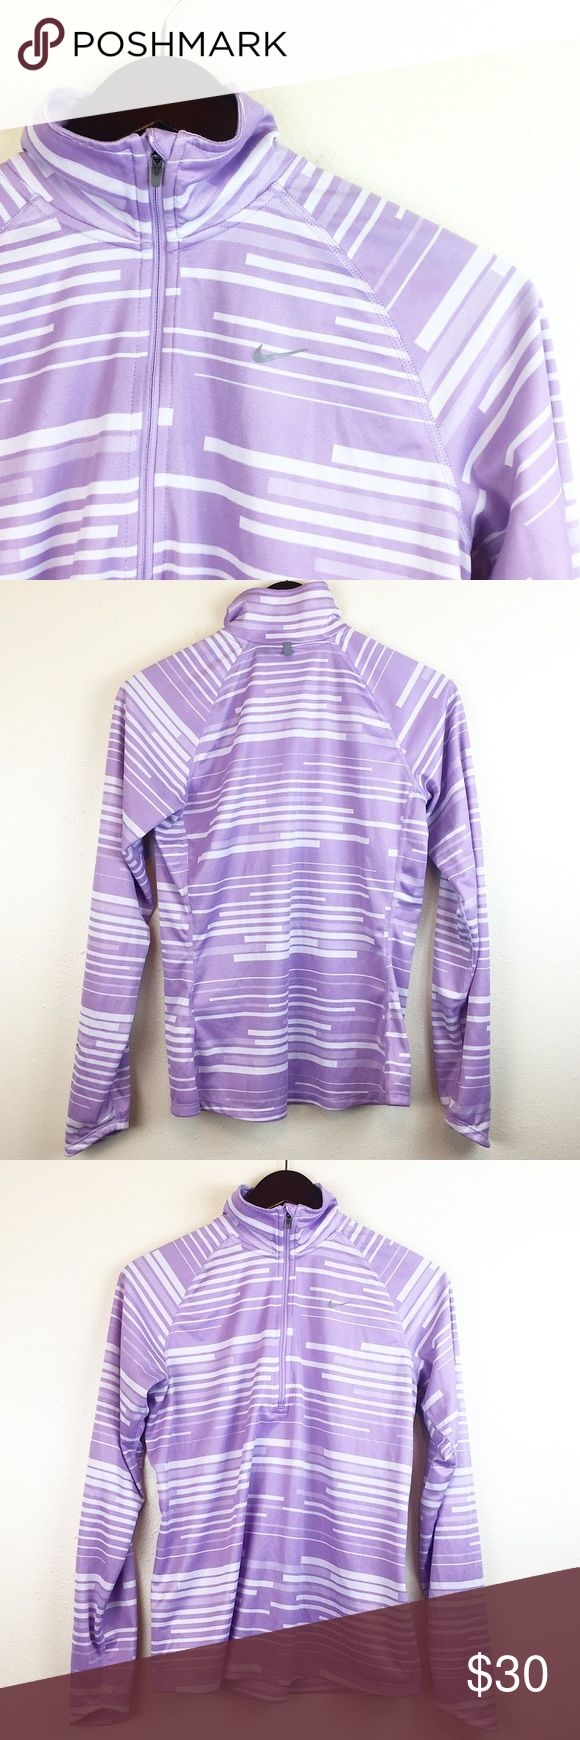 "Nike Women's 1/4 Zip Pullover Purple White Size M Nike Women's 1/4 Zip Pull Over Size: Medium Color: Purple/White  Measurements:  Bust - armpit to armpit laying flat: 18"" Sleeve Length - 21"" Length - taken from back of garment, top to bottom: 25"" Great Pre Loved Condition! HAPPY POSHING! Nike Tops Sweatshirts & Hoodies"